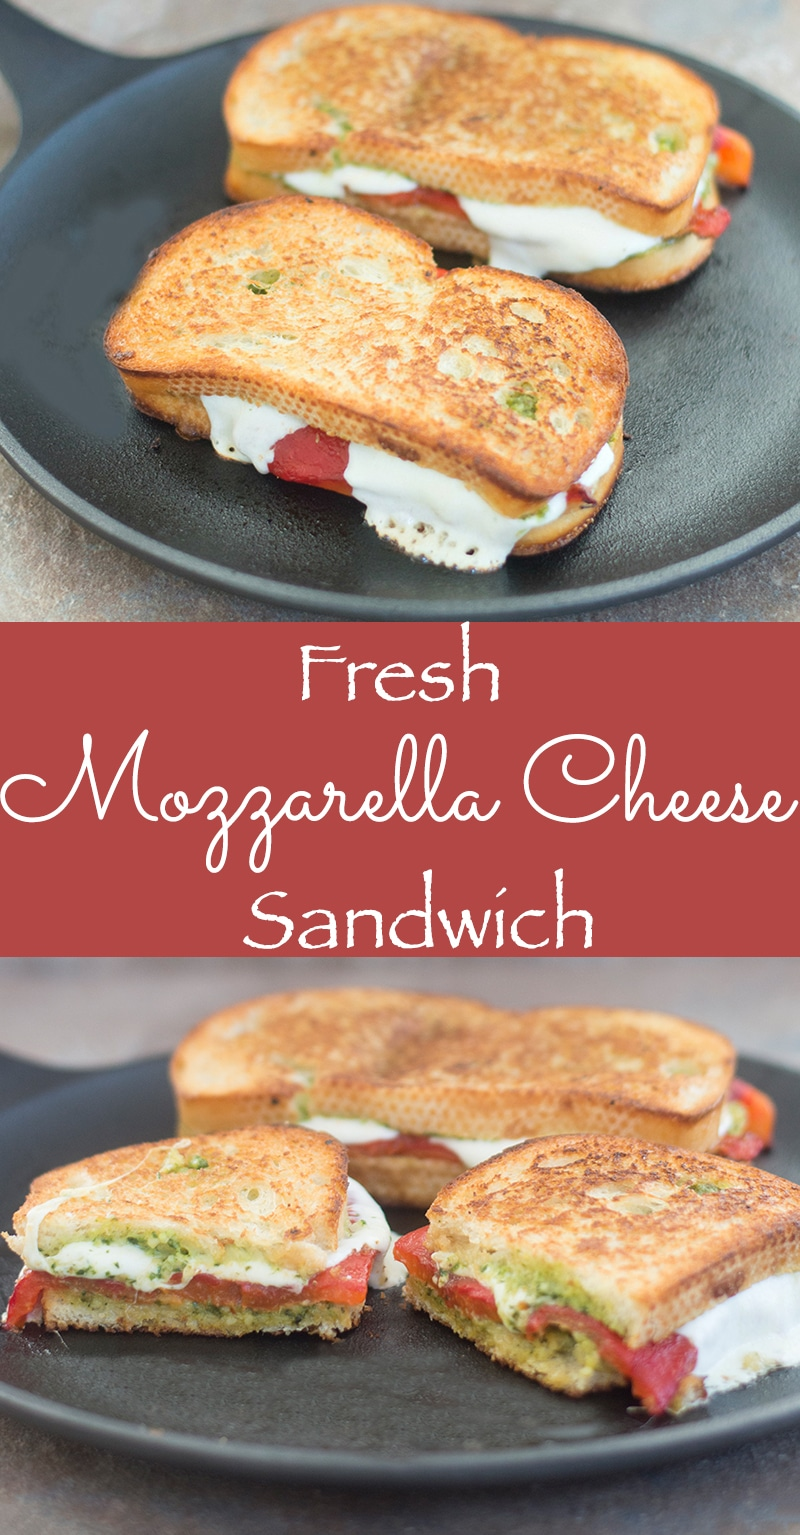 Mozzarella Cheese Sandwich made with fresh cheese, roasted red peppers and homemade arugula pesto spread. Perfect Sunday brunch recipe or pack it for an easy brown bag lunch sandwich